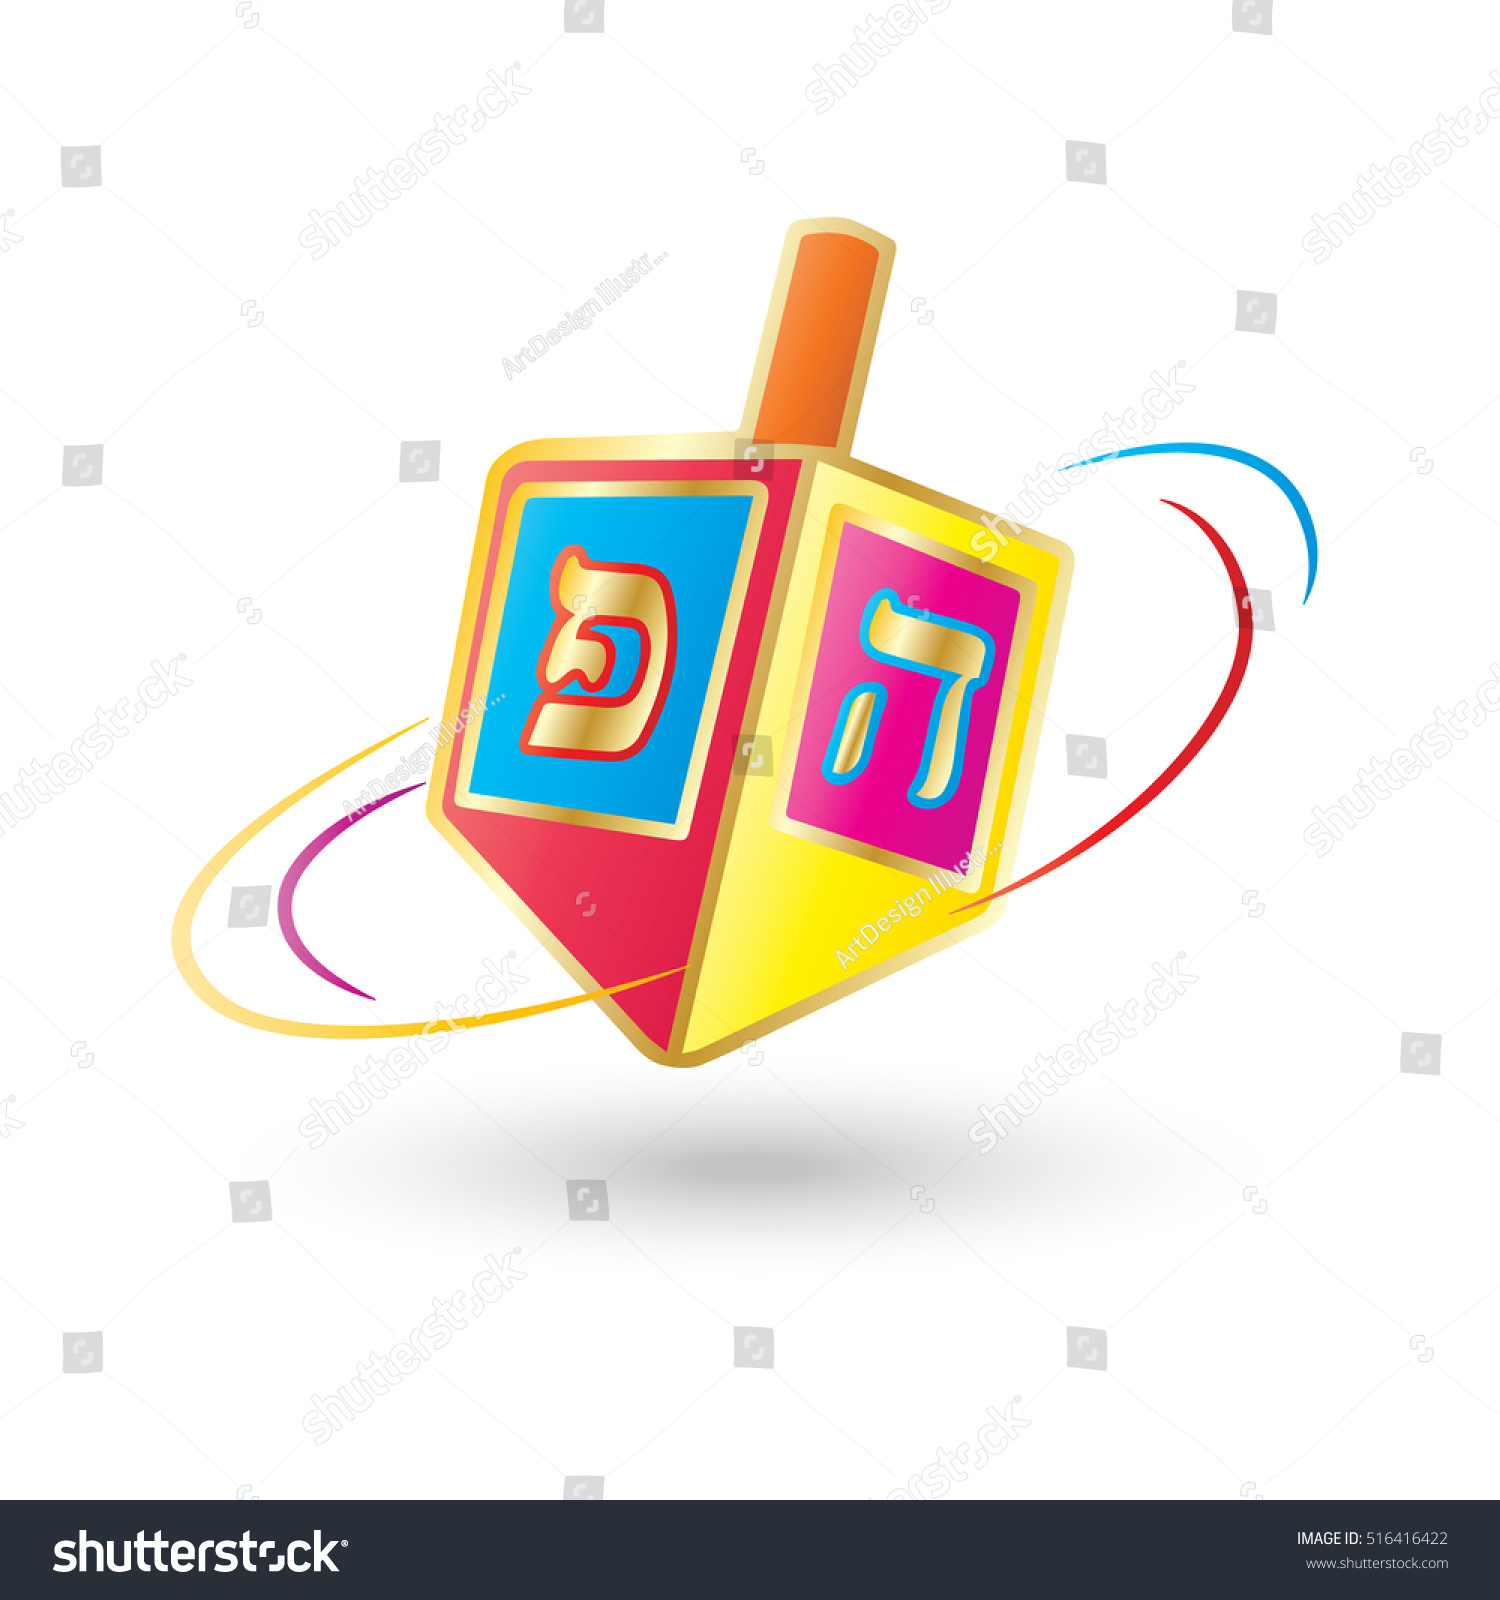 Uncategorized Hanukkah Festival Of Lights Song hanukkah festival lights dreidel small foursided stock vector of a four sided spinning top with hebrew